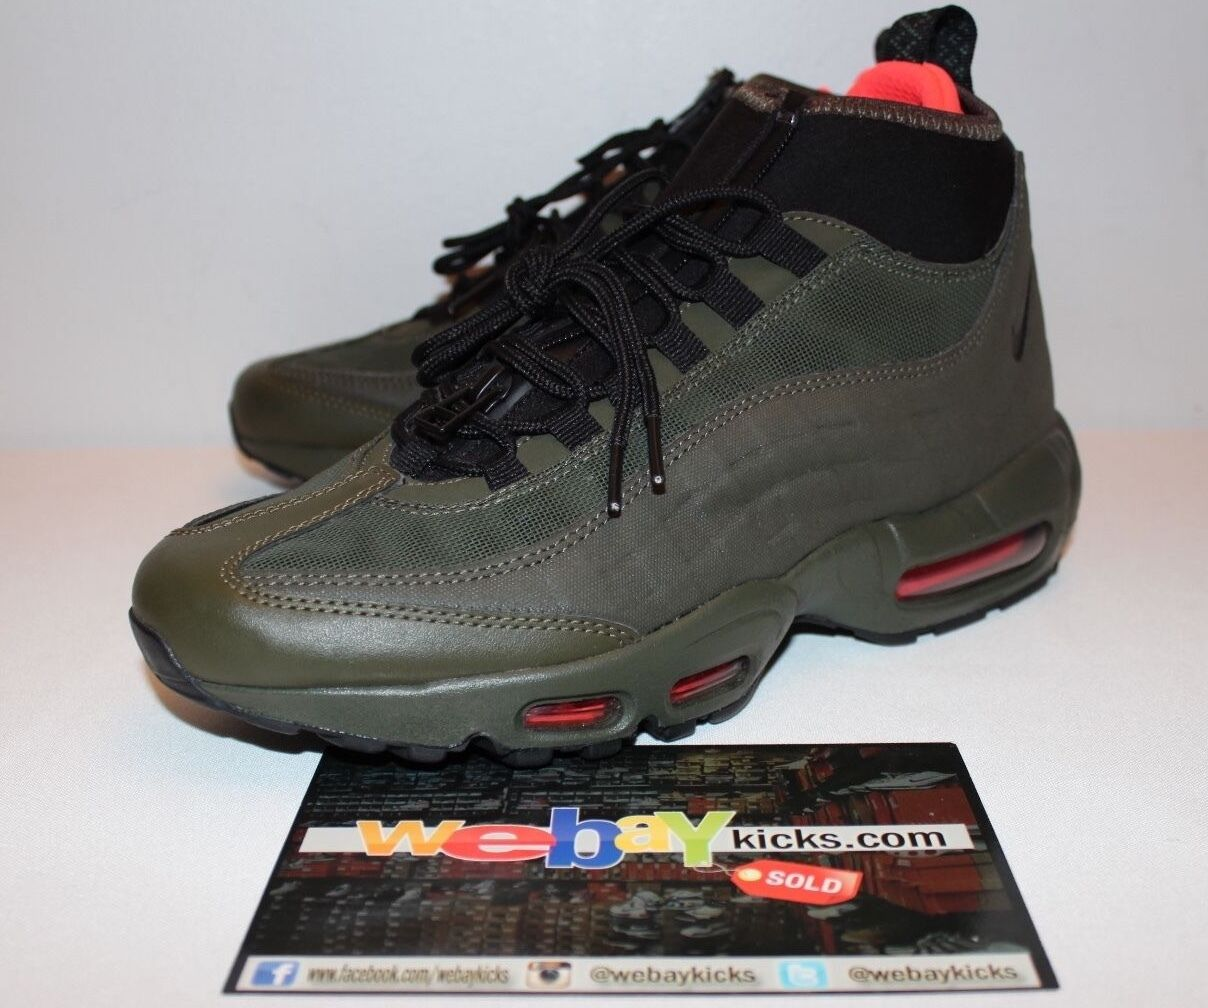 Nike Air Max 95 Sneakerboot Olive Black Sneakers Men's Size 8 New No Box